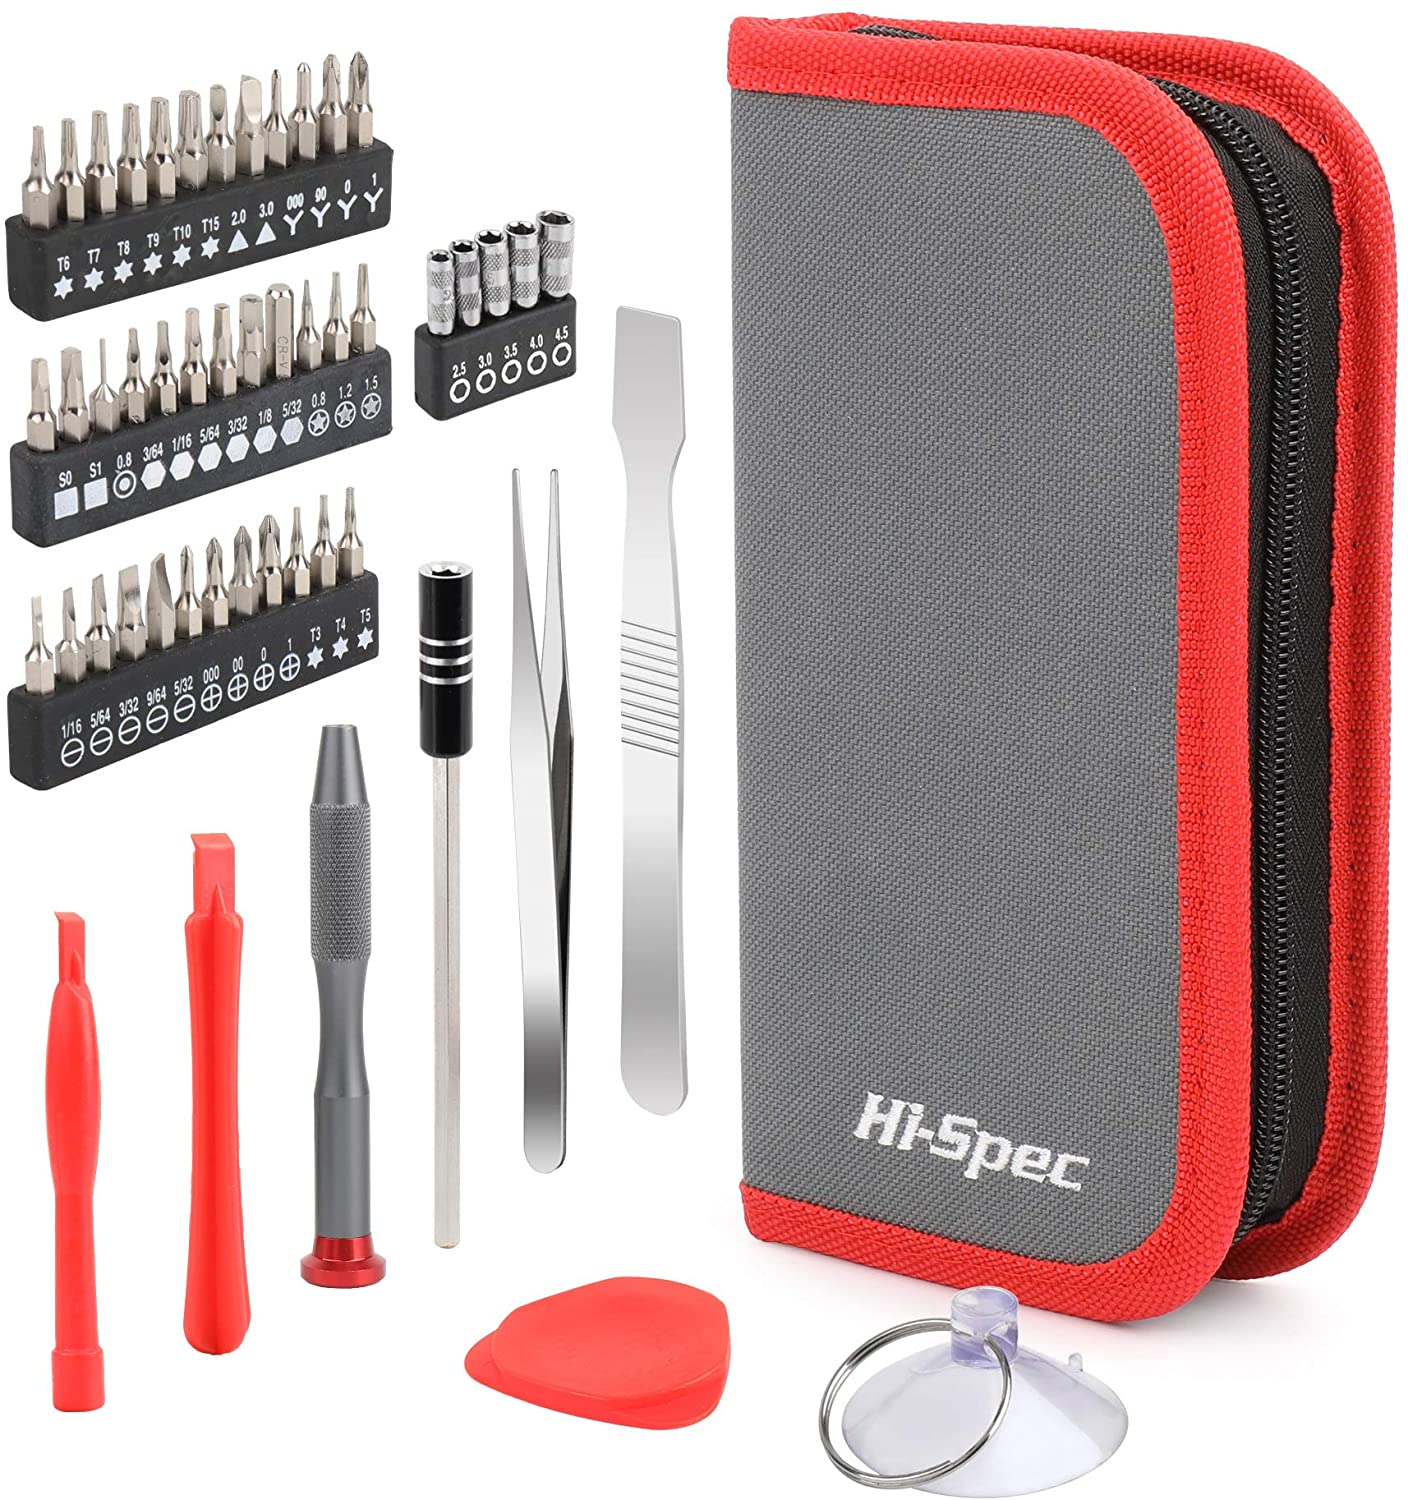 Hi-Spec 49 Piece Repair & Opening Tool Kit Set With Precision Screw Driver Bits For Android Mobile Cell Phones, iPhones, Macbooks, Laptops, Notebooks, Video Game Consoles & Electronic Gadgets